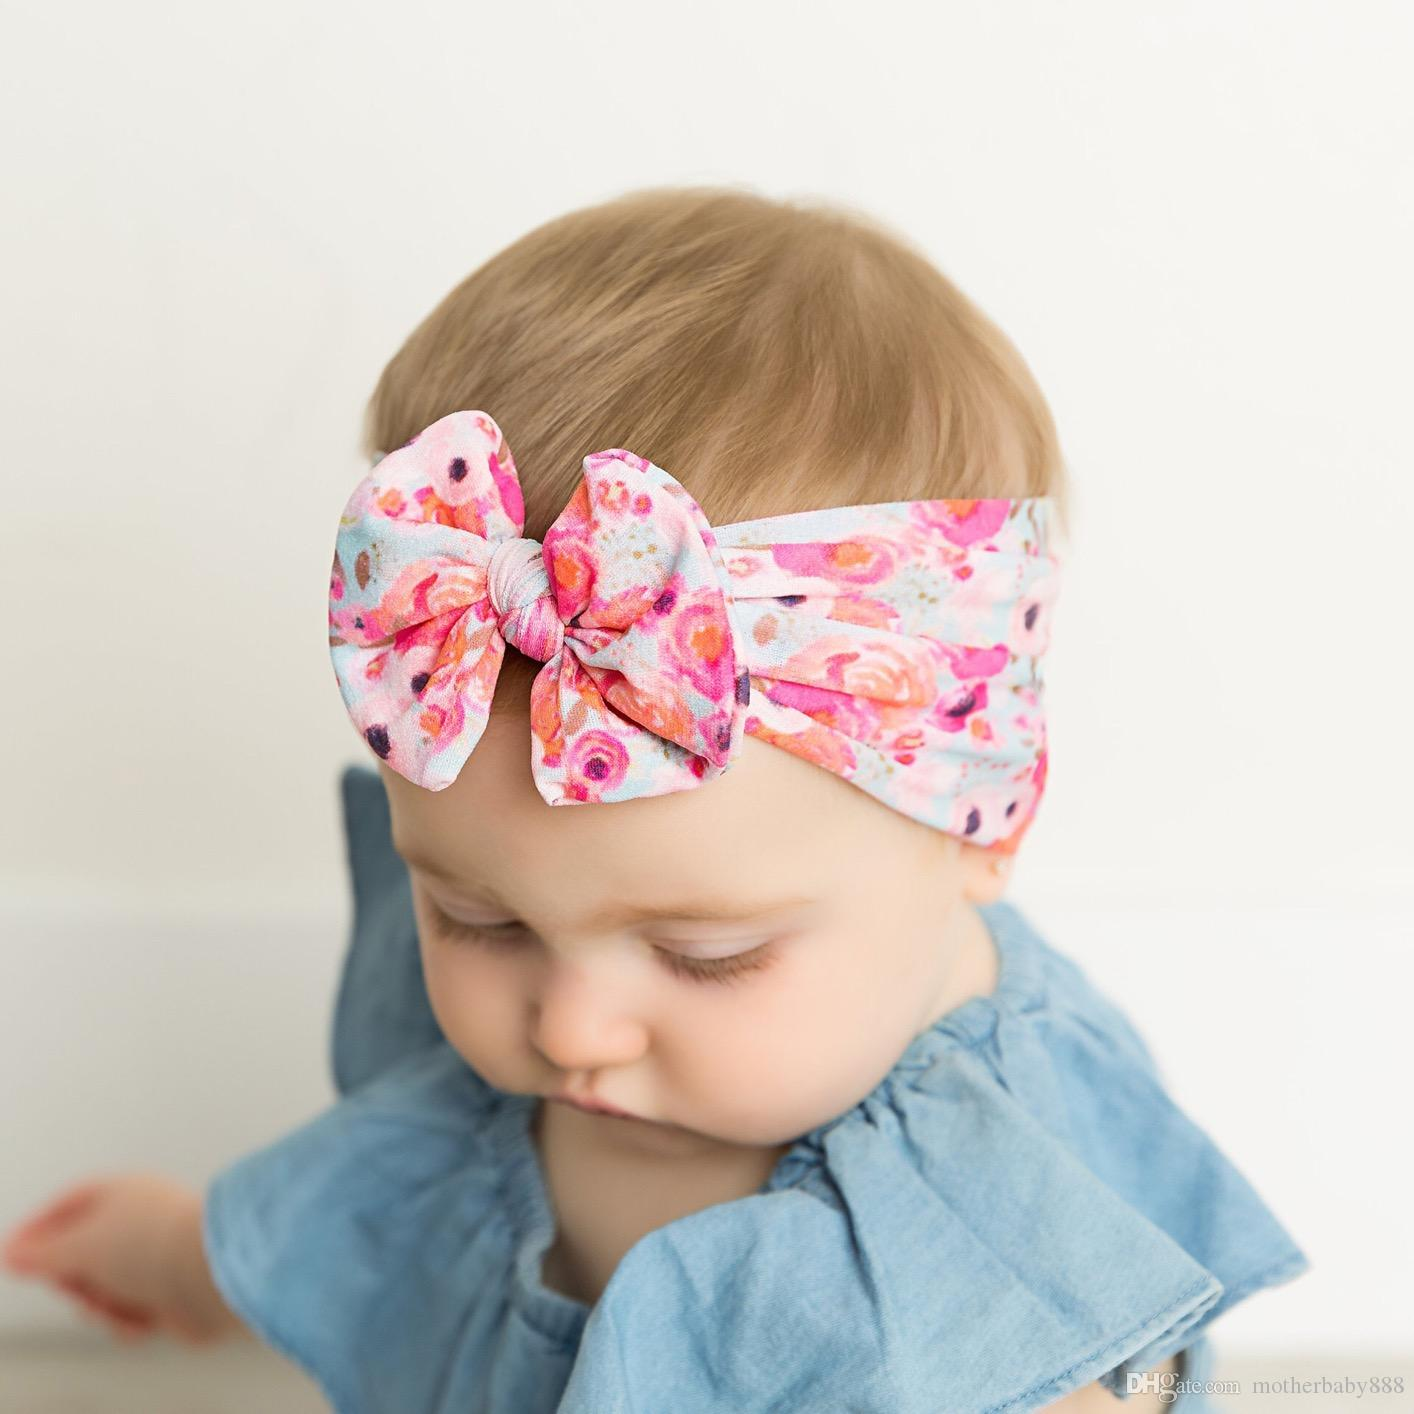 FLORAL BLUE DENIM HEADWRAP WRAP HEADBAND KNOT BOW BABY TODDLER GIRLS NEW